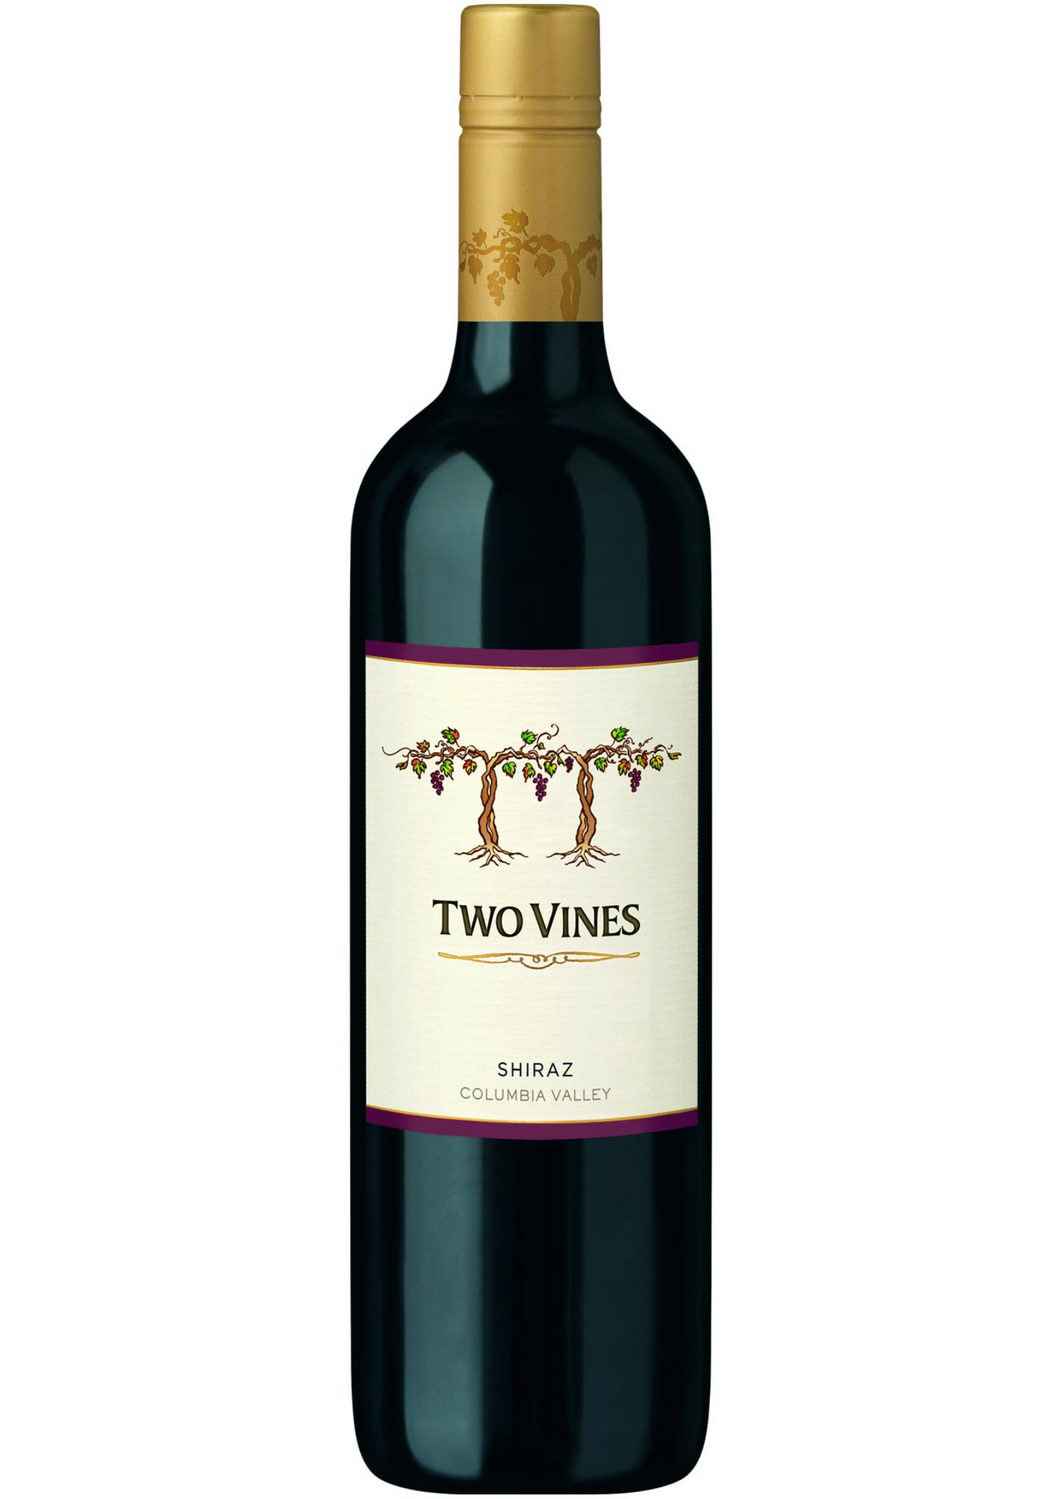 2014 TWO VINES SHIRAZ COLOMBIA VALLEY, COLUMBIA CREST - Vine0nline